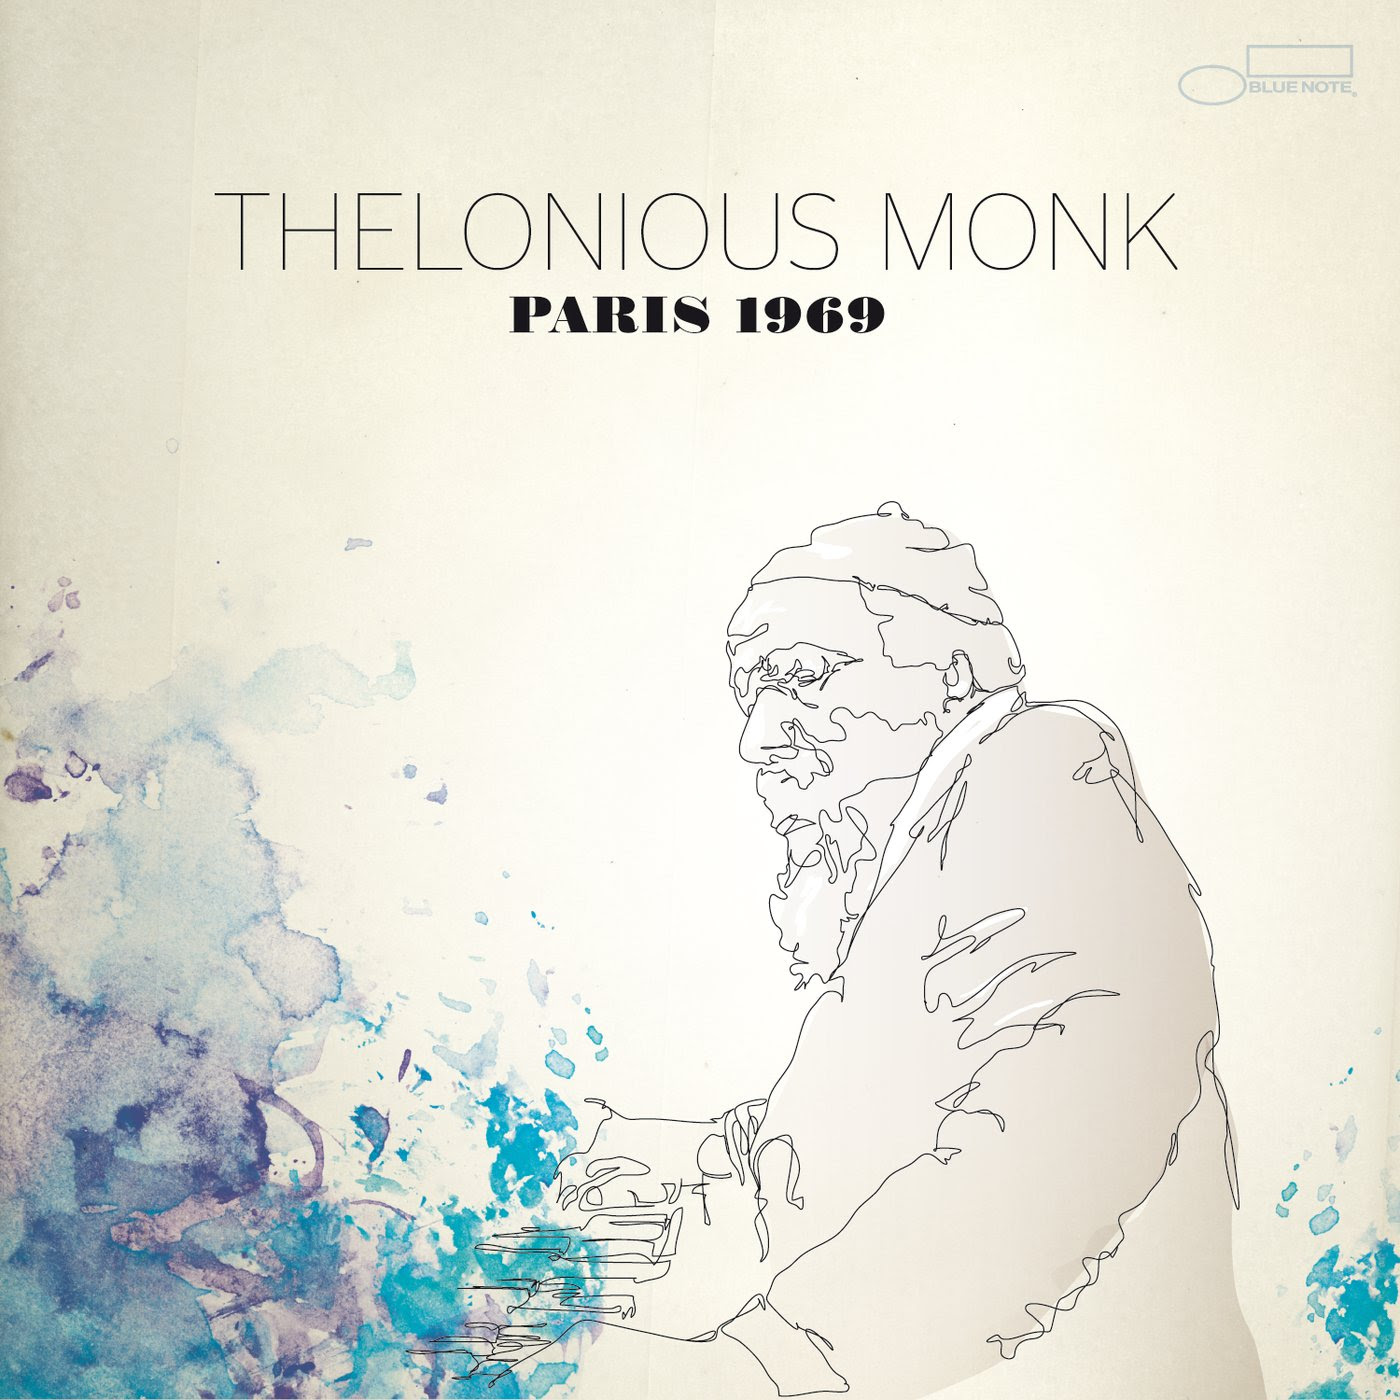 Thelonious Monk - Paris 1969 cover